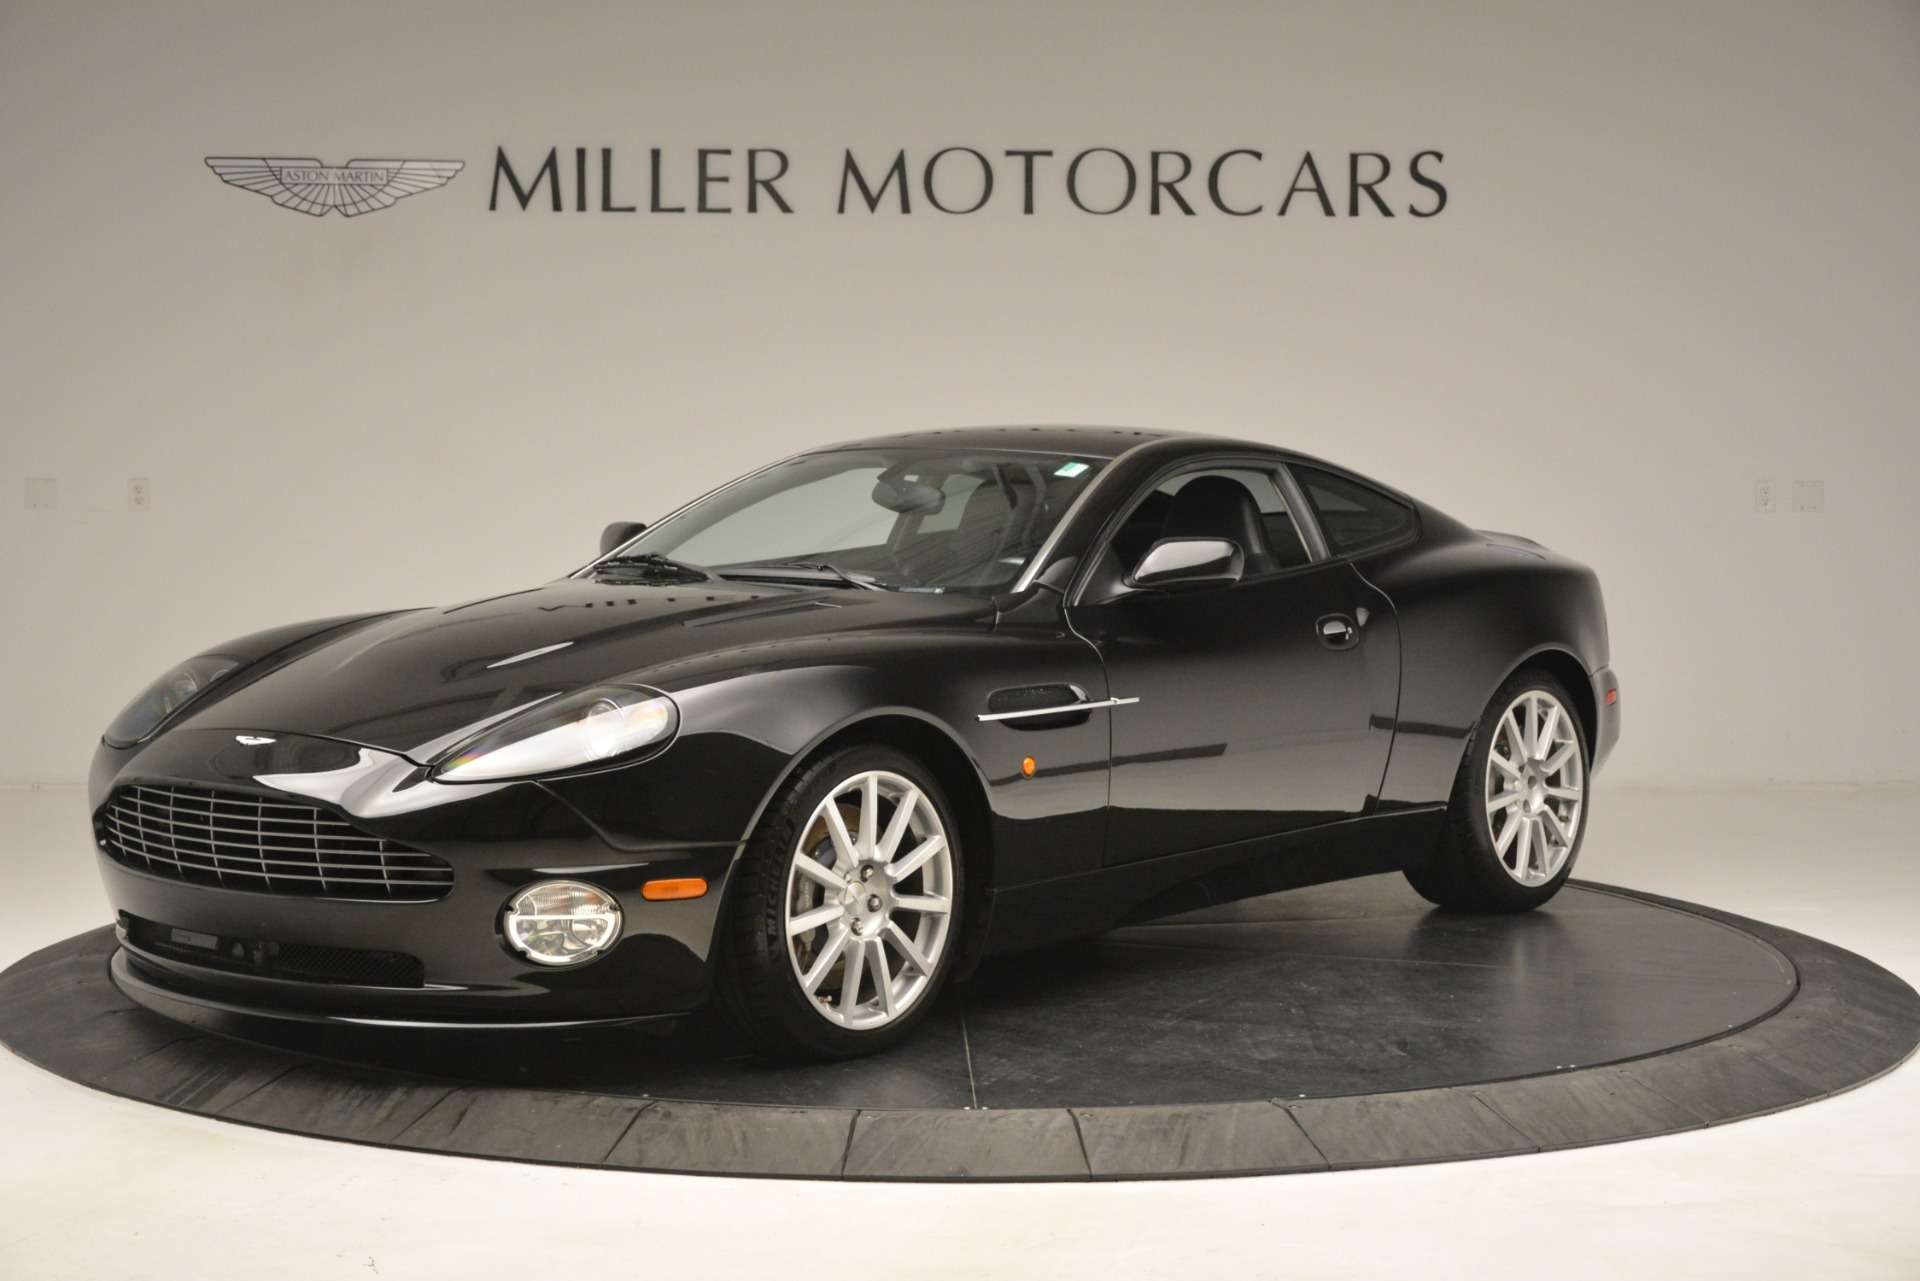 Used 2005 Aston Martin V12 Vanquish S Coupe for sale Sold at Rolls-Royce Motor Cars Greenwich in Greenwich CT 06830 1